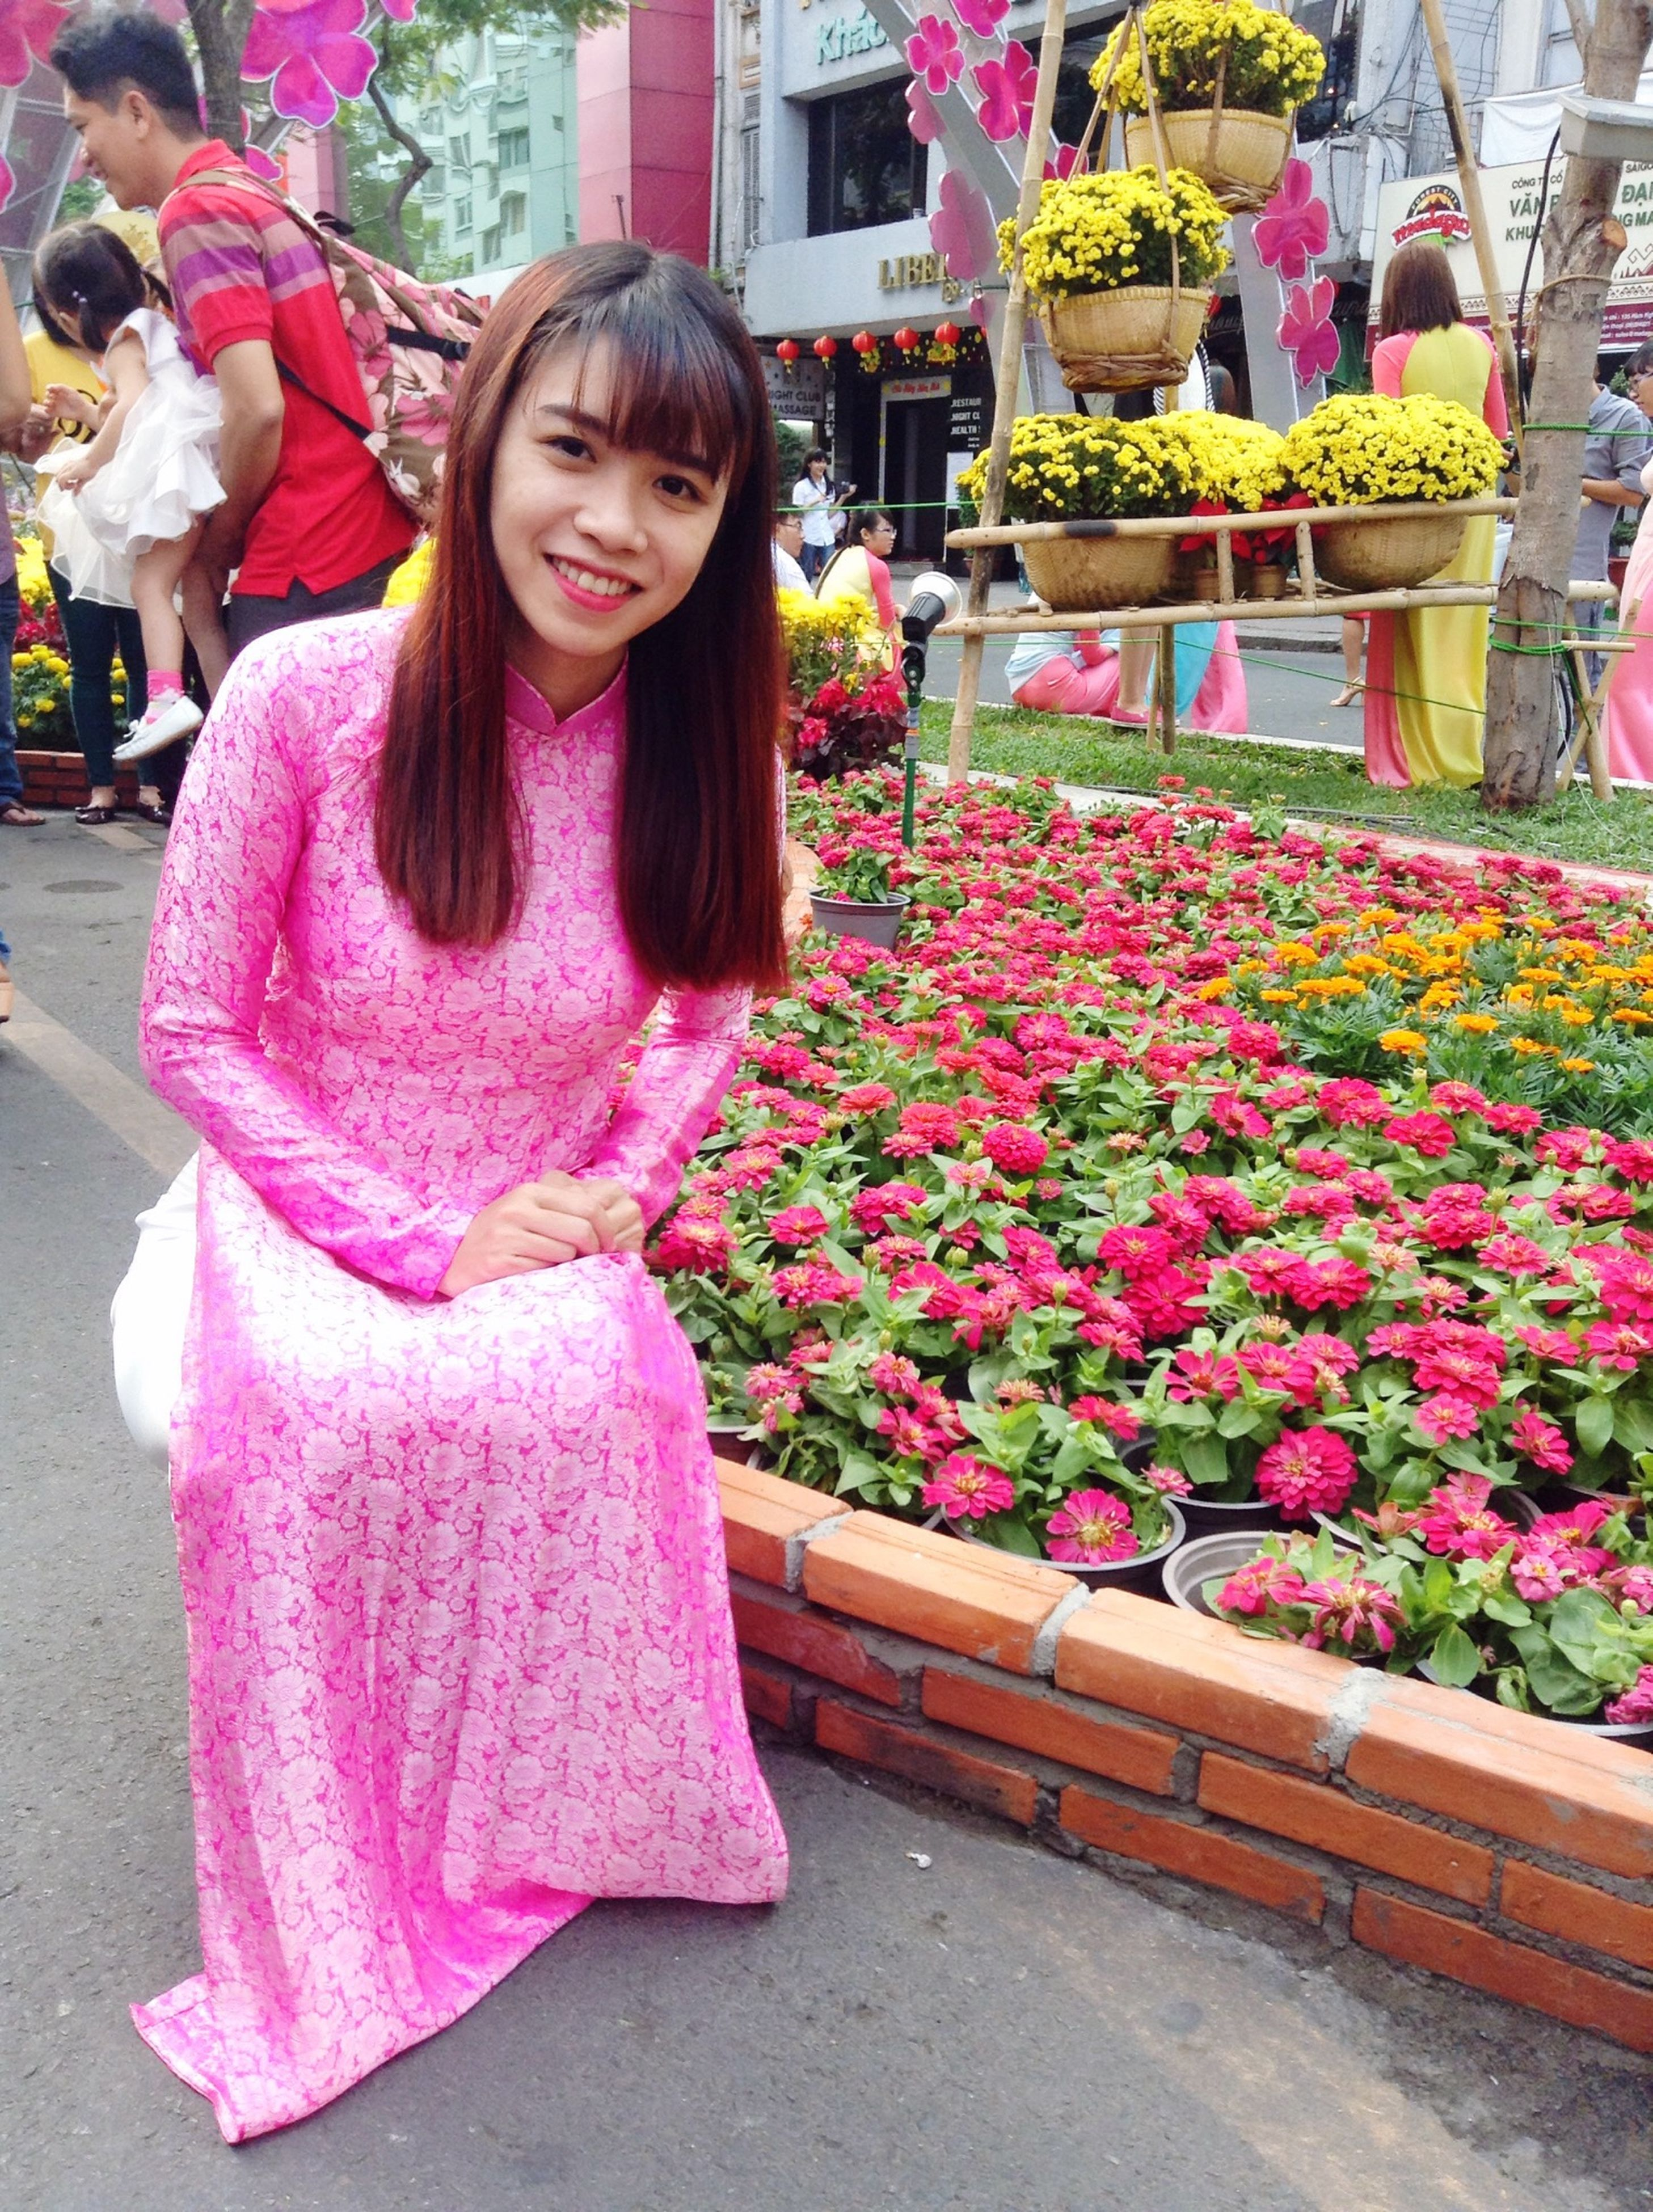 person, casual clothing, flower, lifestyles, looking at camera, front view, smiling, leisure activity, standing, portrait, young women, full length, young adult, happiness, girls, traditional clothing, freshness, dress